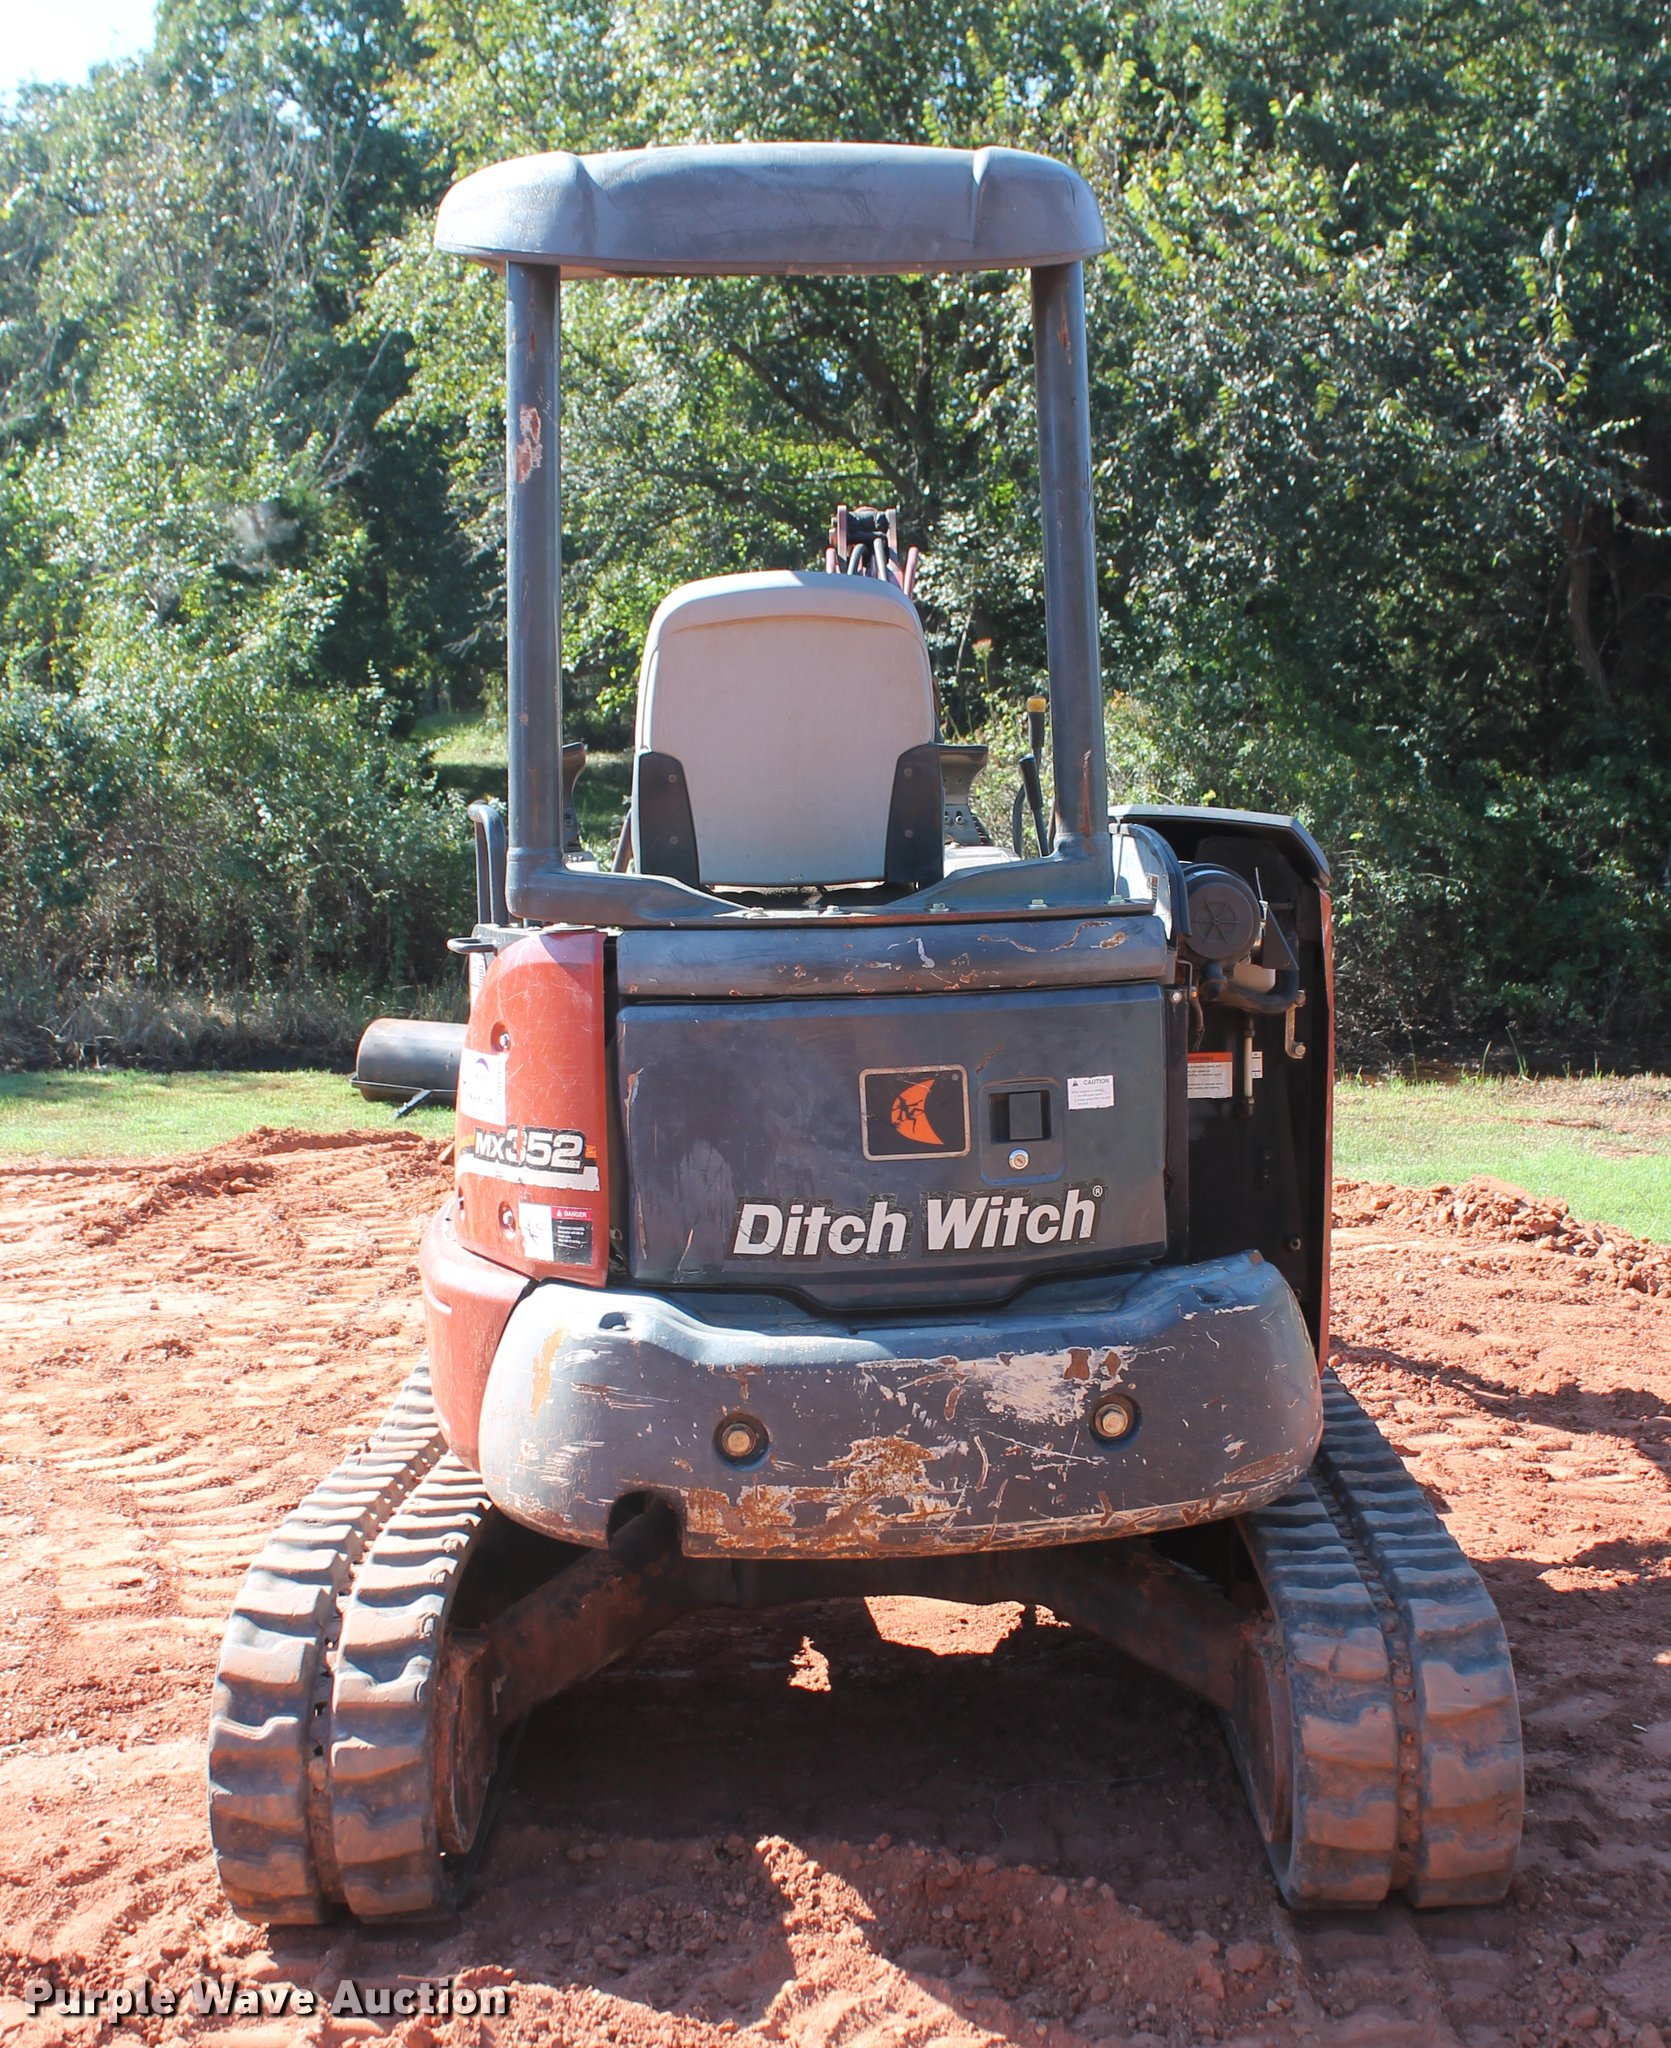 Ditch Witch Golf Cart | www.topsimages.com on ditch witch rt 10 specs, ditch witch rock saw attachment, ditch witch r300, ditch witch goose neck, ditch witch 3700, ditch witch brand, ditch witch rt24, ditch witch rt80, ditch witch orange, ditch witch fx30, ditch witch rt55, ditch witch fx25, ditch witch 1010, ditch witch trencher, ditch witch rt95, ditch witch rt45, ditch witch 115, ditch witch fx20, ditch witch rt100,